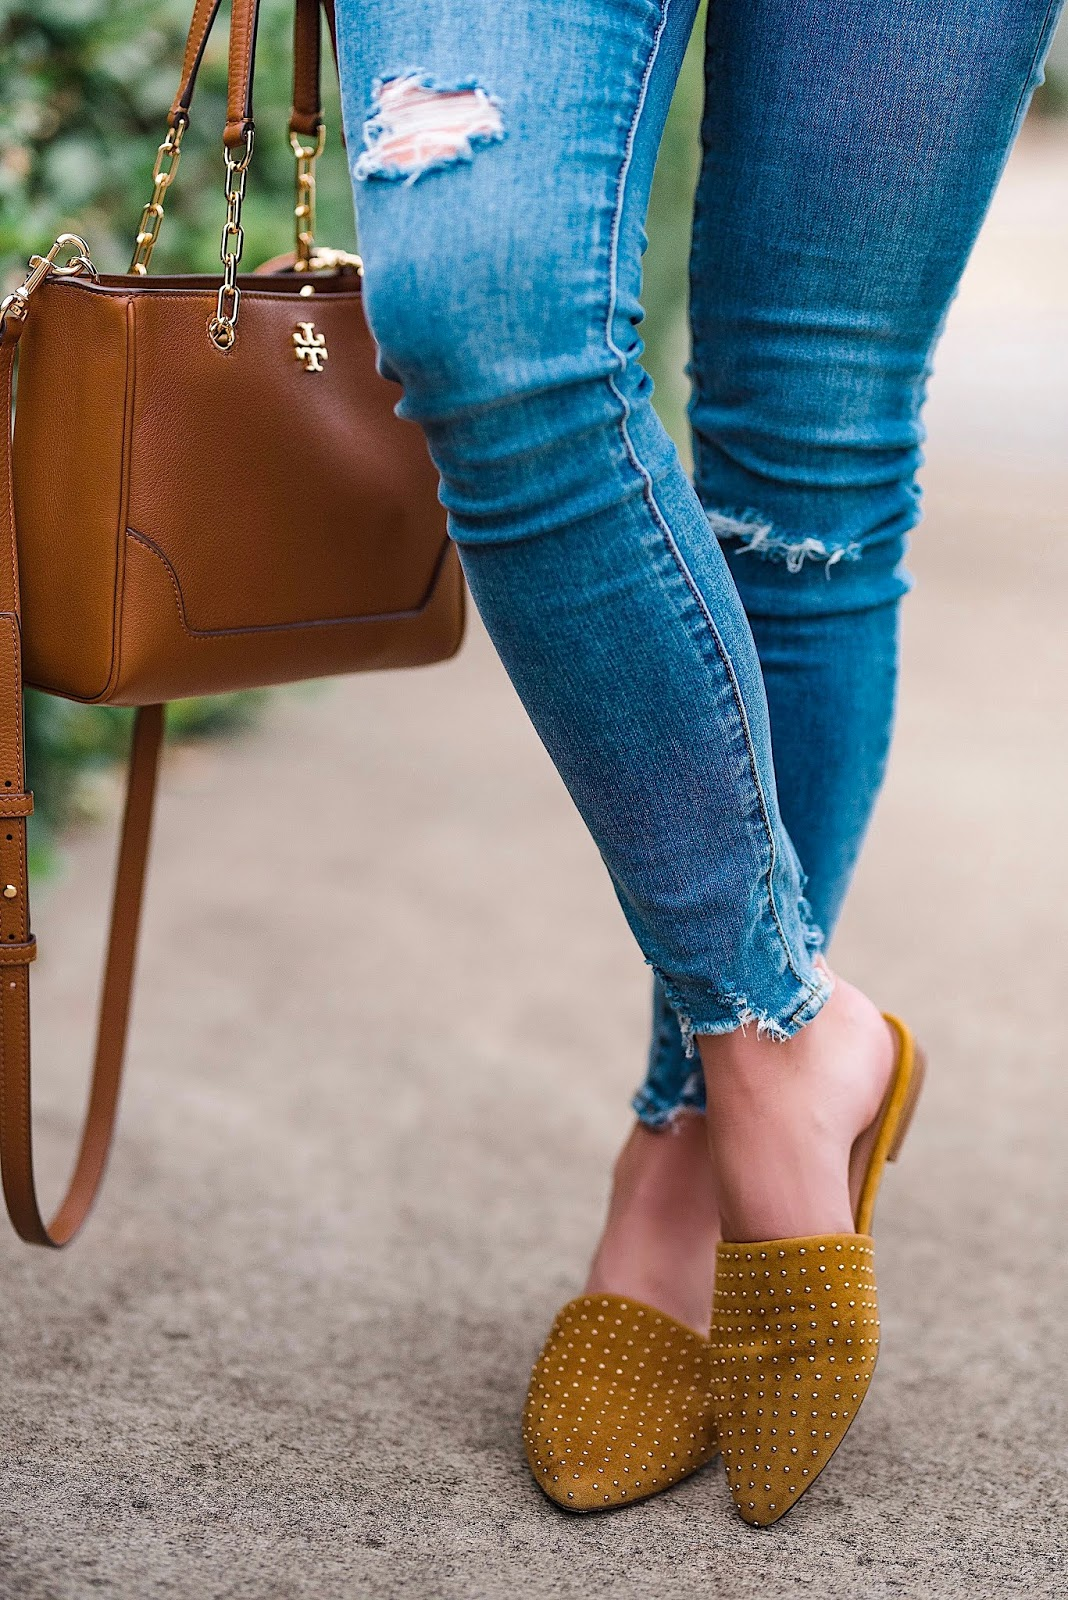 Nordstrom Anniversary Sale Jeans & Mules - Something Delightful Blog